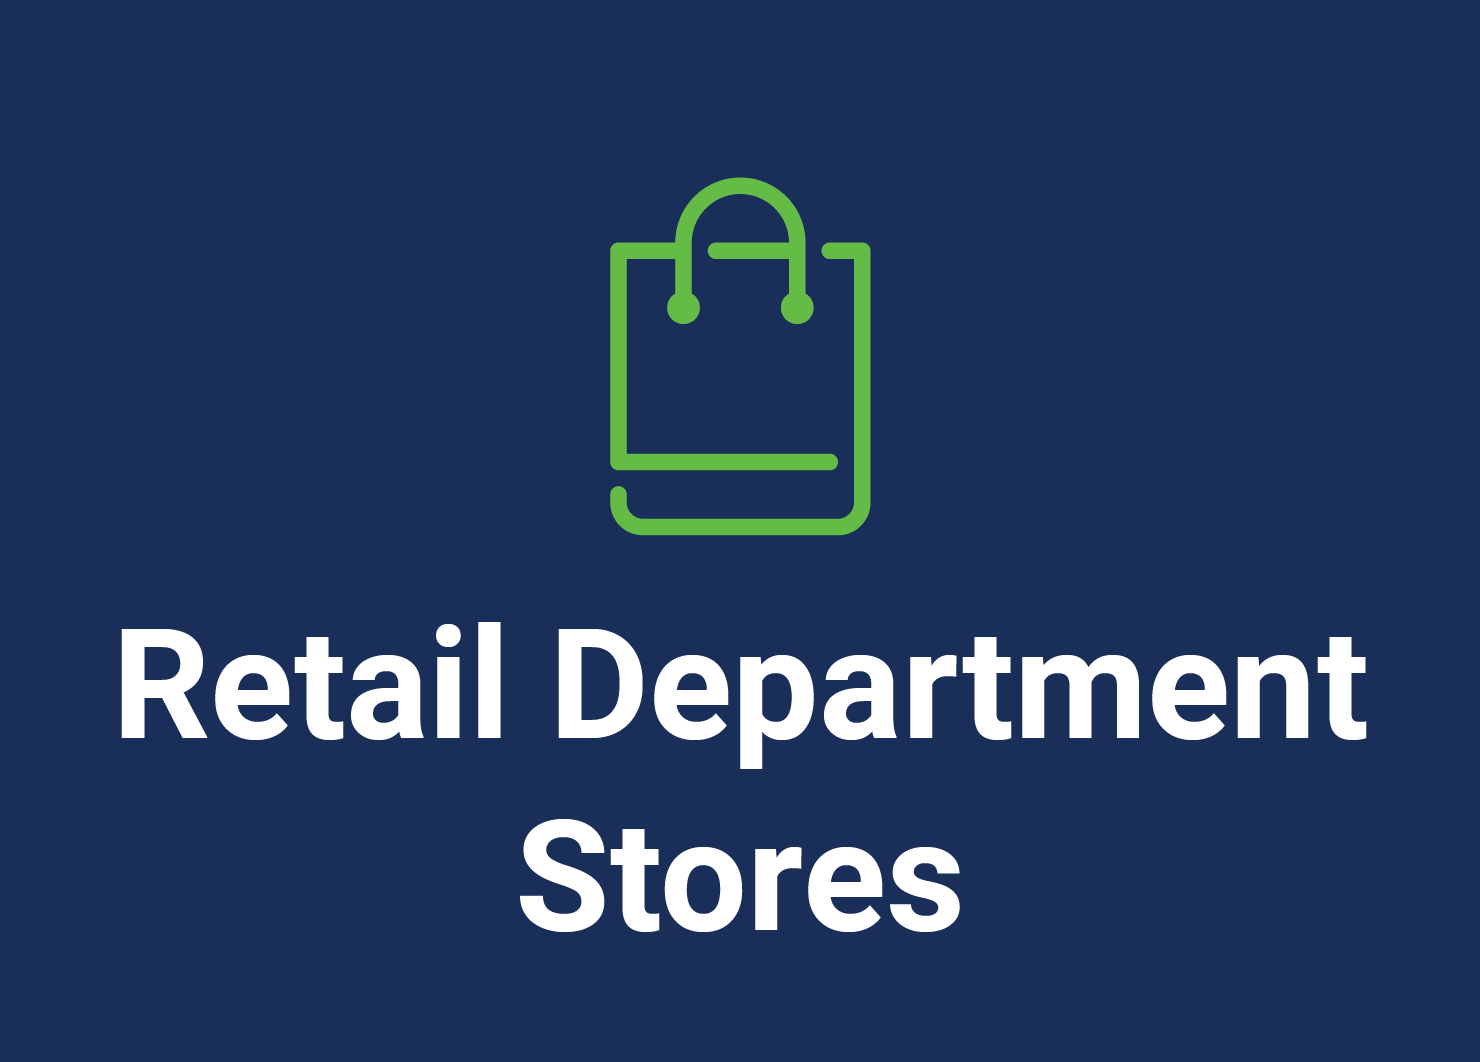 Retail Department Stores